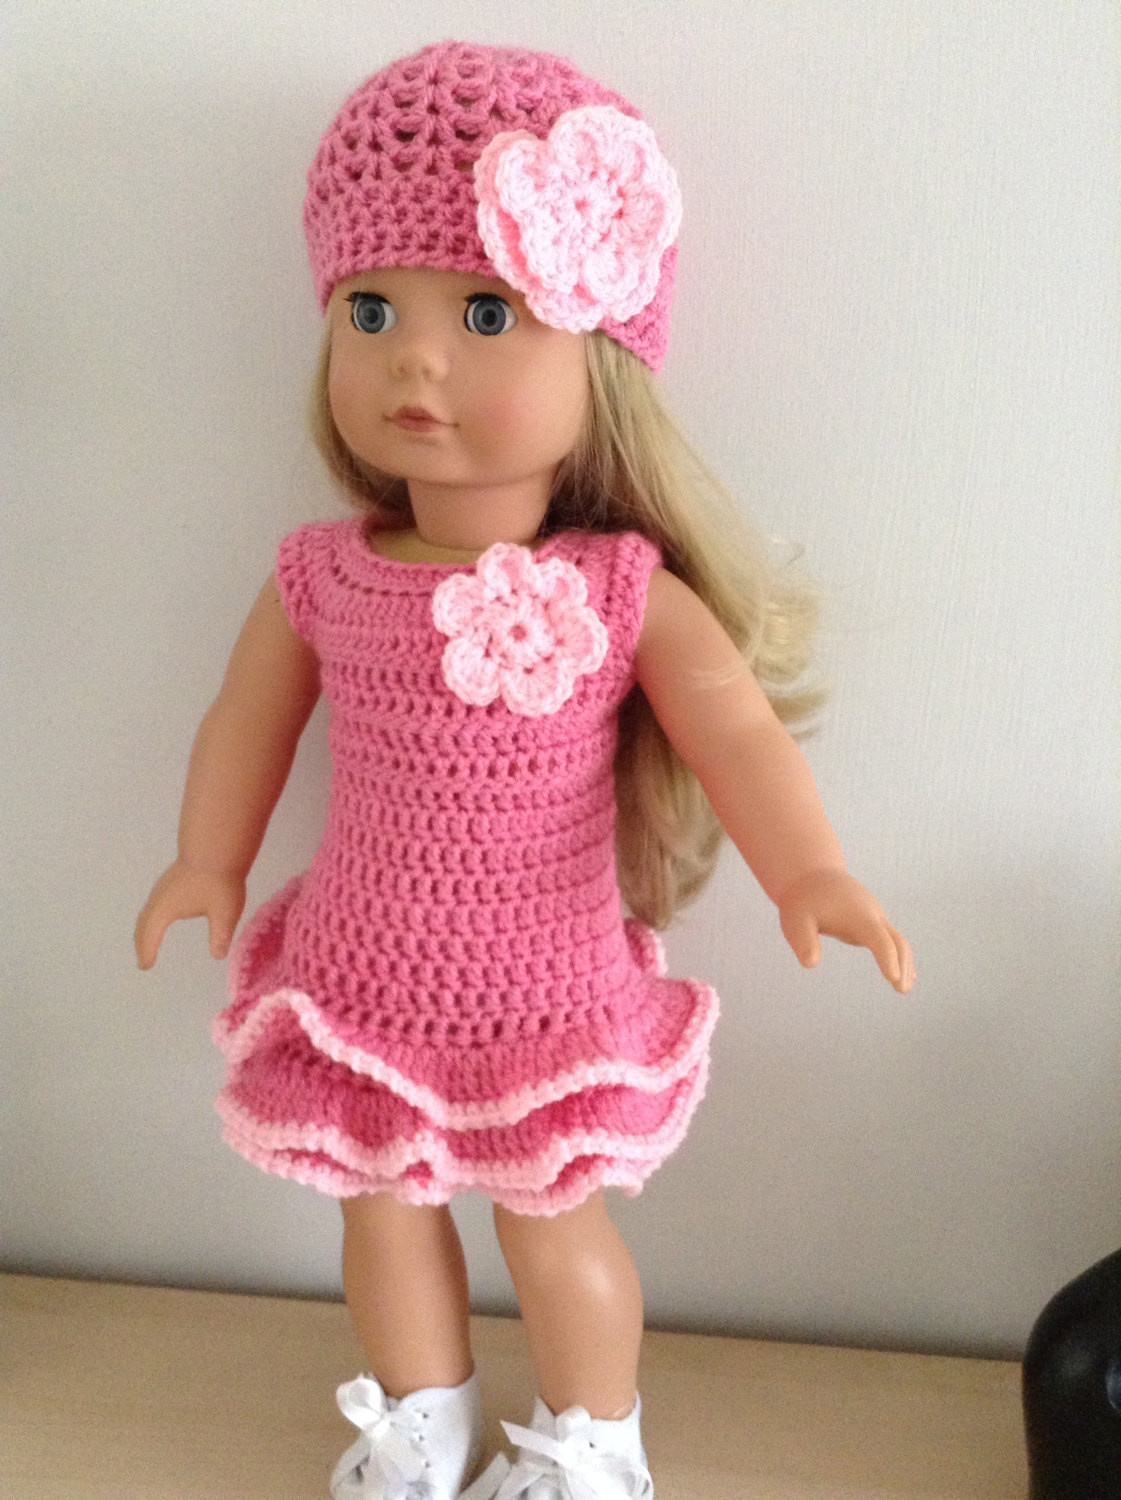 Elegant Pdf Crochet Pattern for 18 Inch Doll American Girl Doll or Free Crochet Patterns for American Girl Dolls Clothes Of Adorable 50 Pictures Free Crochet Patterns for American Girl Dolls Clothes